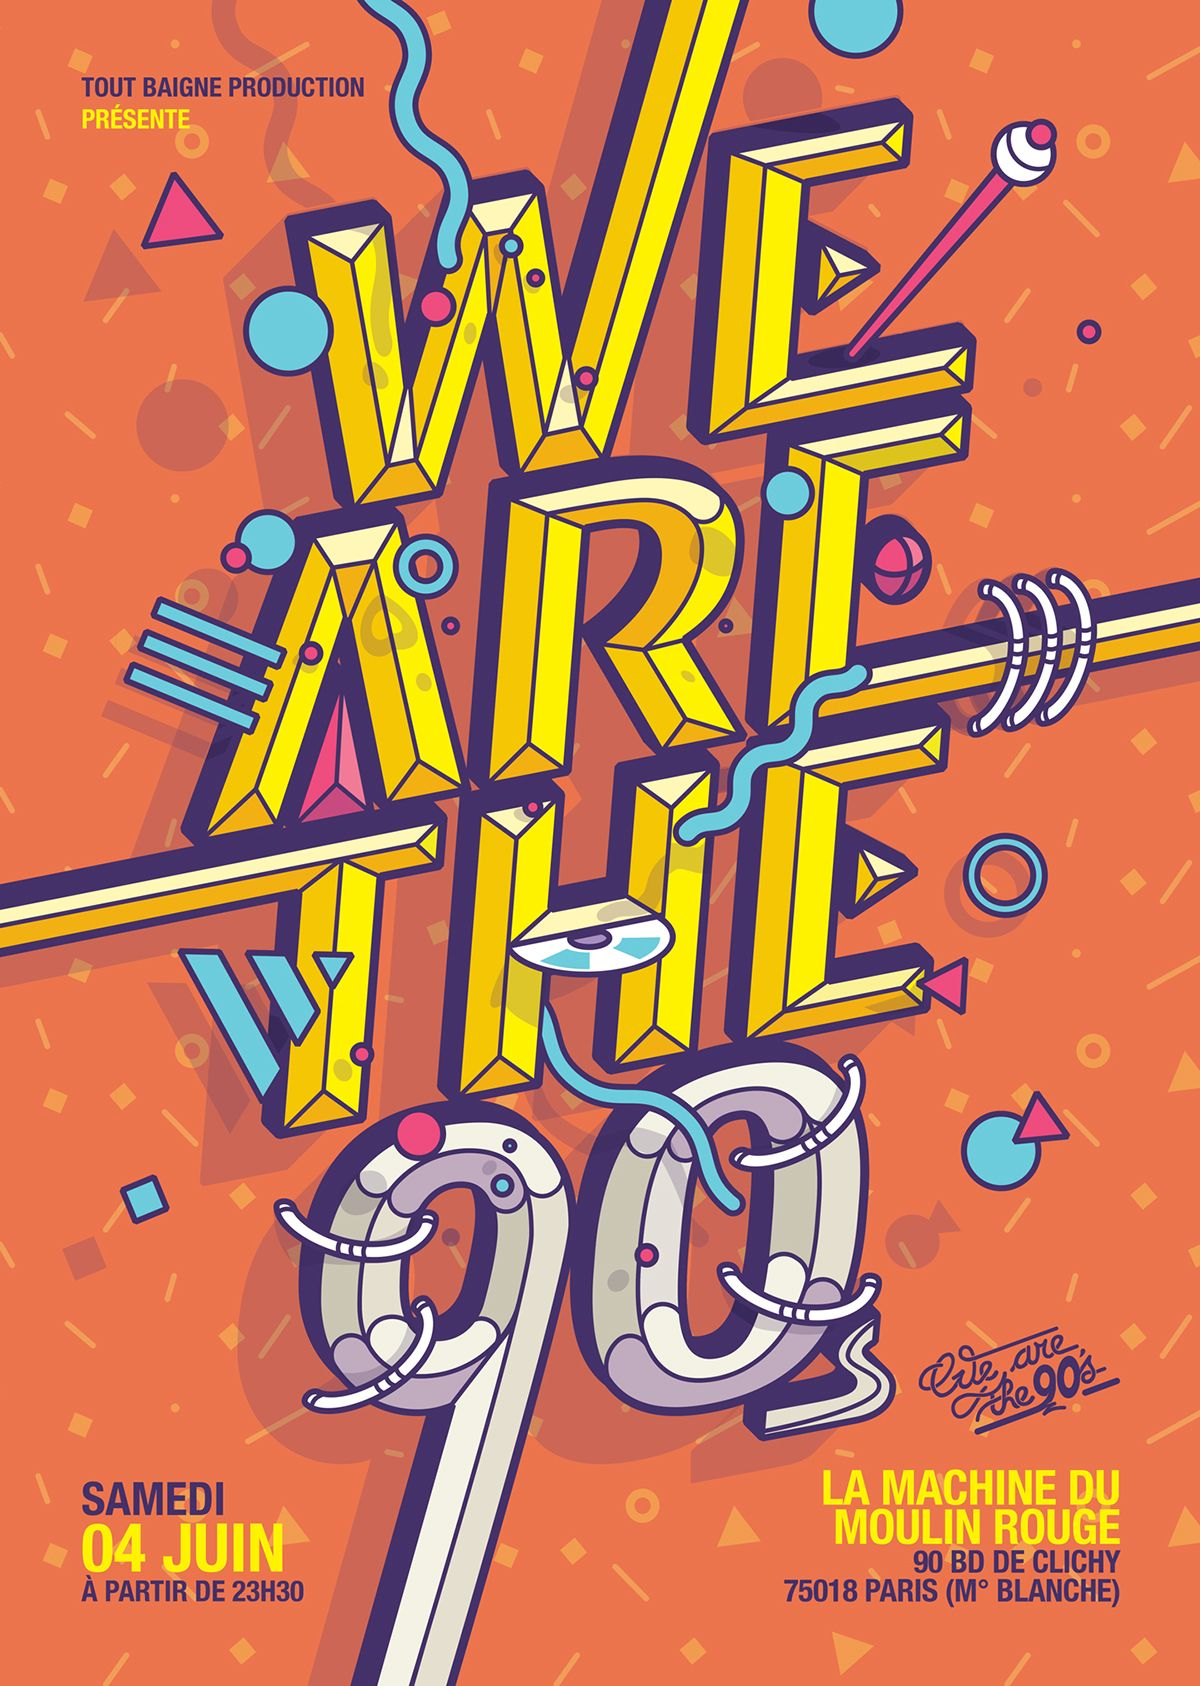 90s poster design - Visuals Wow We Are The 90 S 02 On Behance